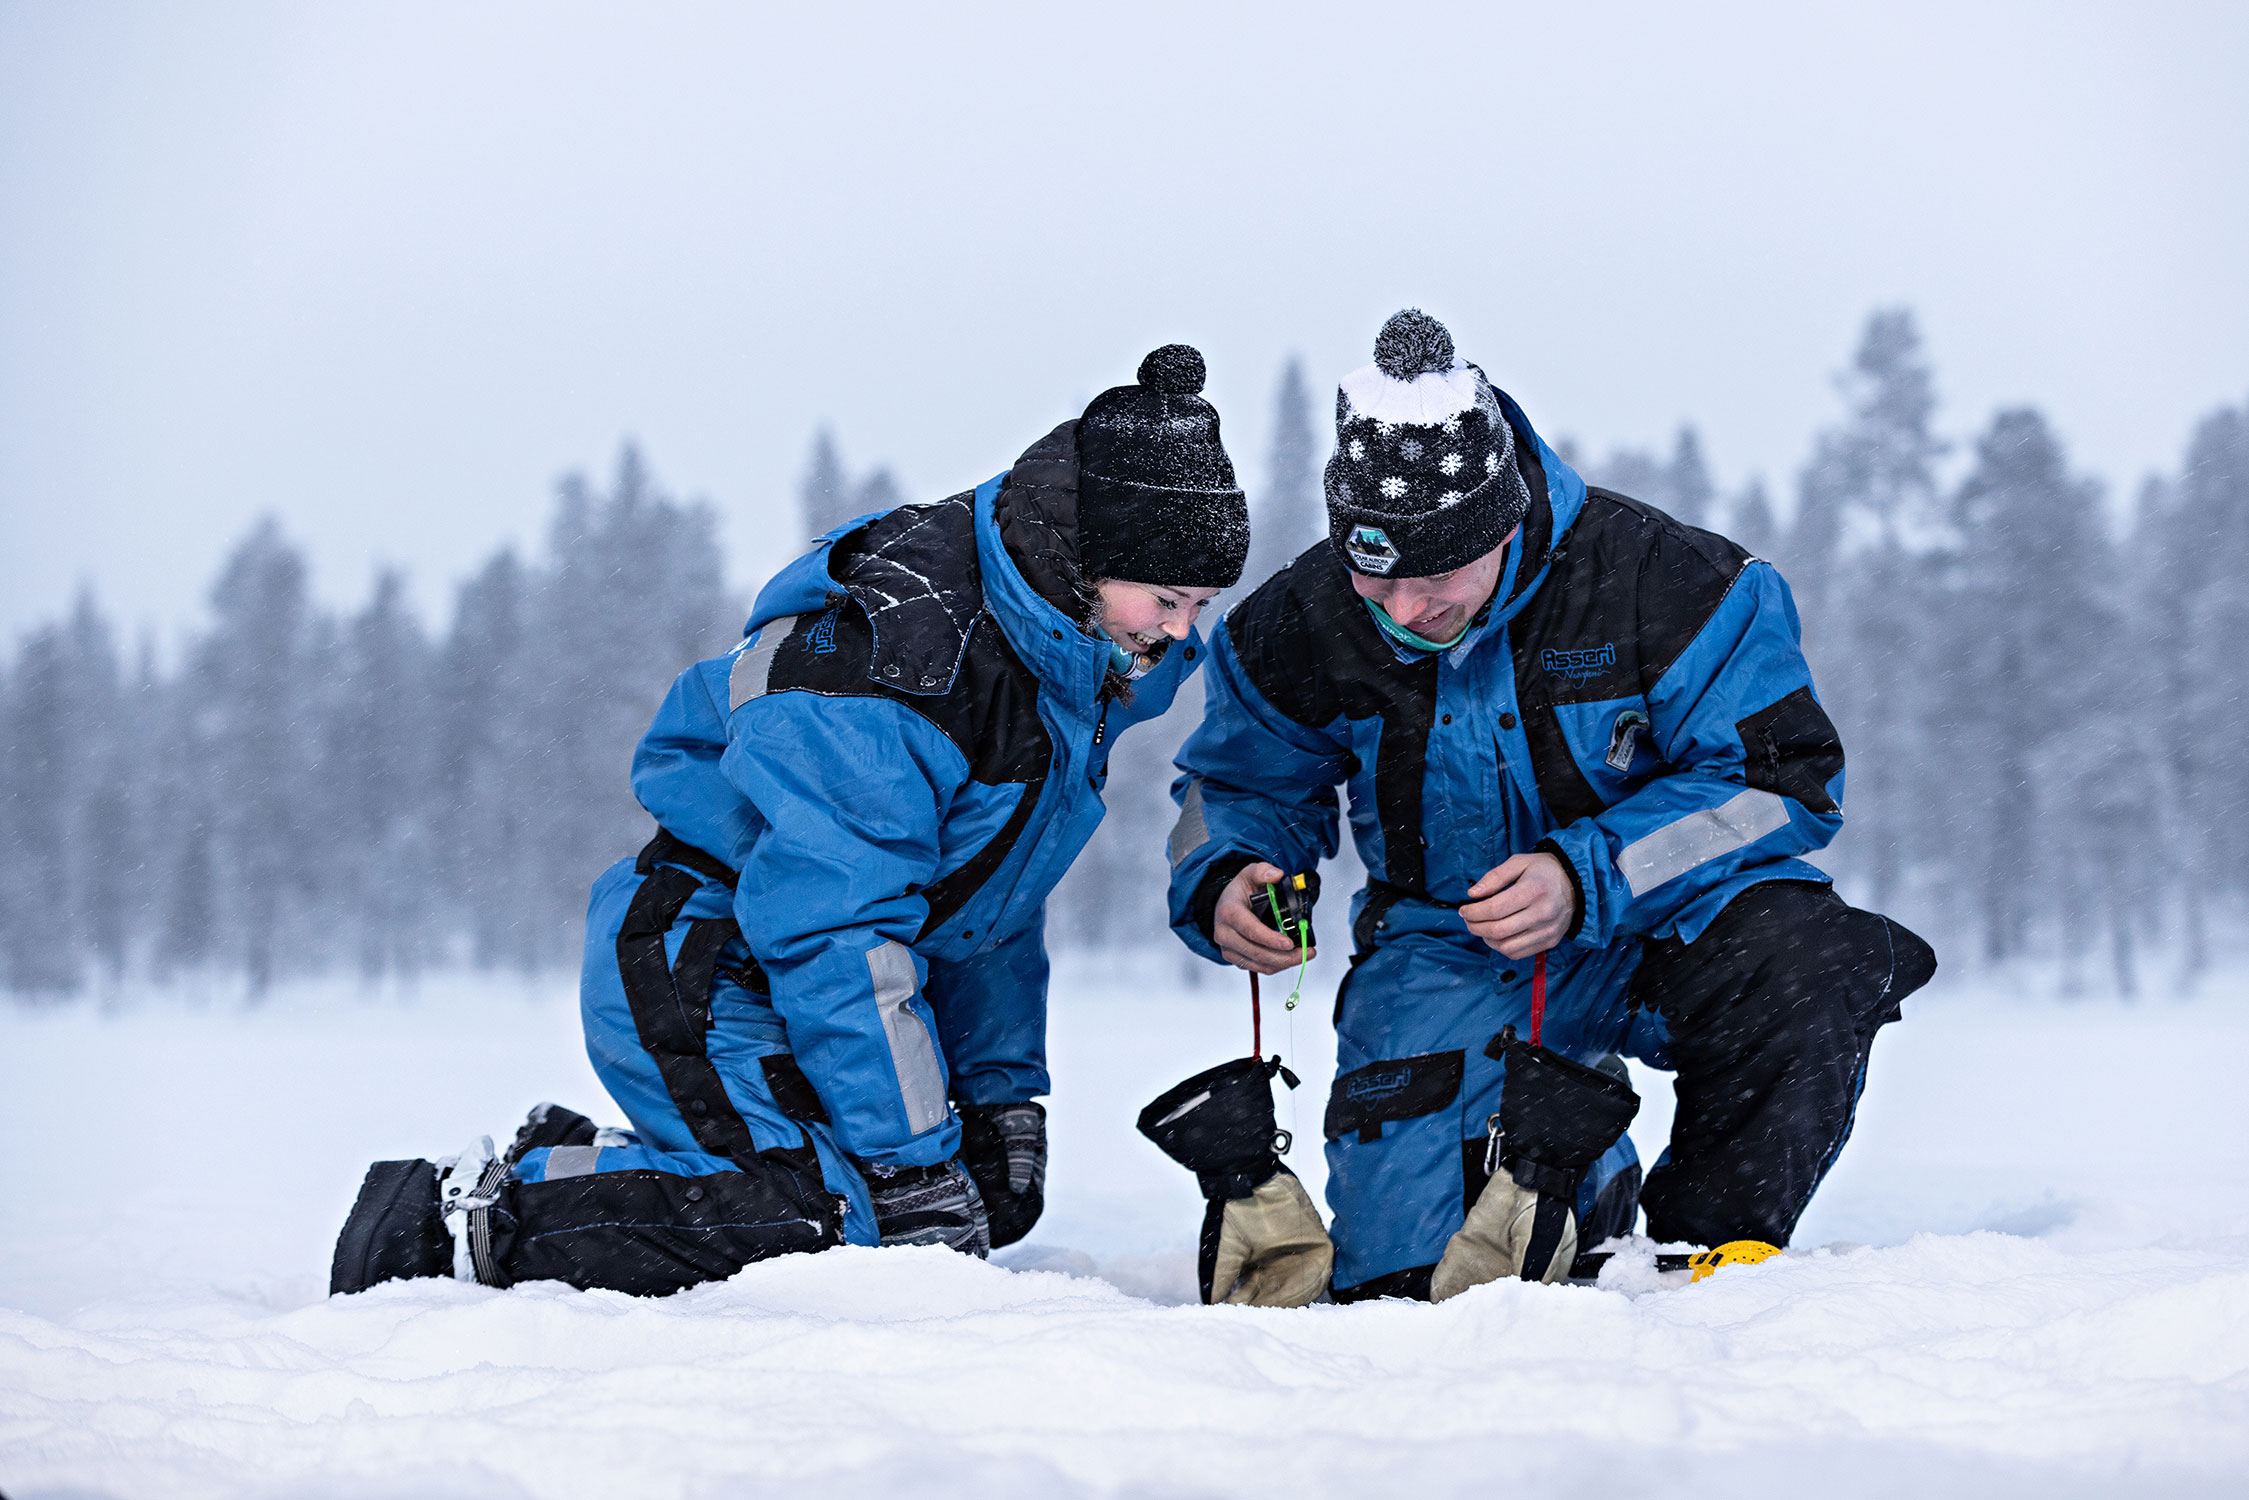 In ice fishing, the first thing to do is drill a hole in the ice.